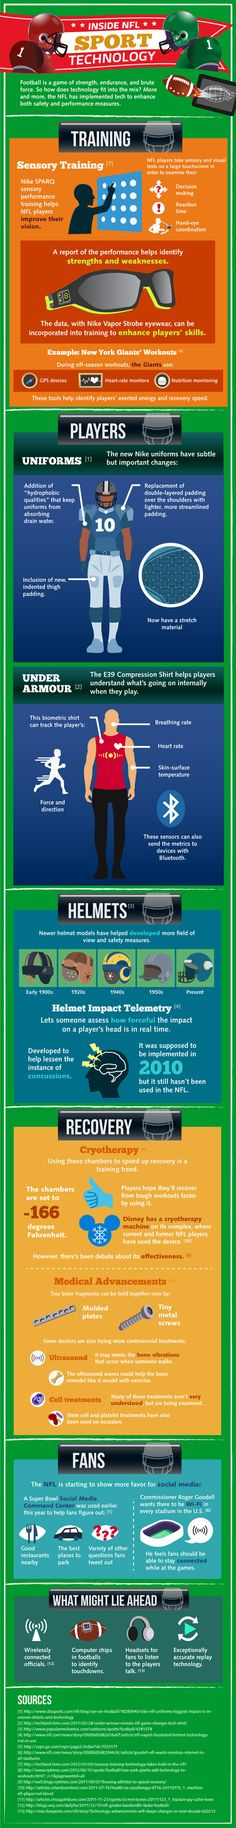 From an NFL player's speed to his vision to the protection of his head, technology plays an ever-important role in the NFL. In this exclusive infographic from Ticket City, we take a look at some of the ways technology is making the country's most popular sport better.